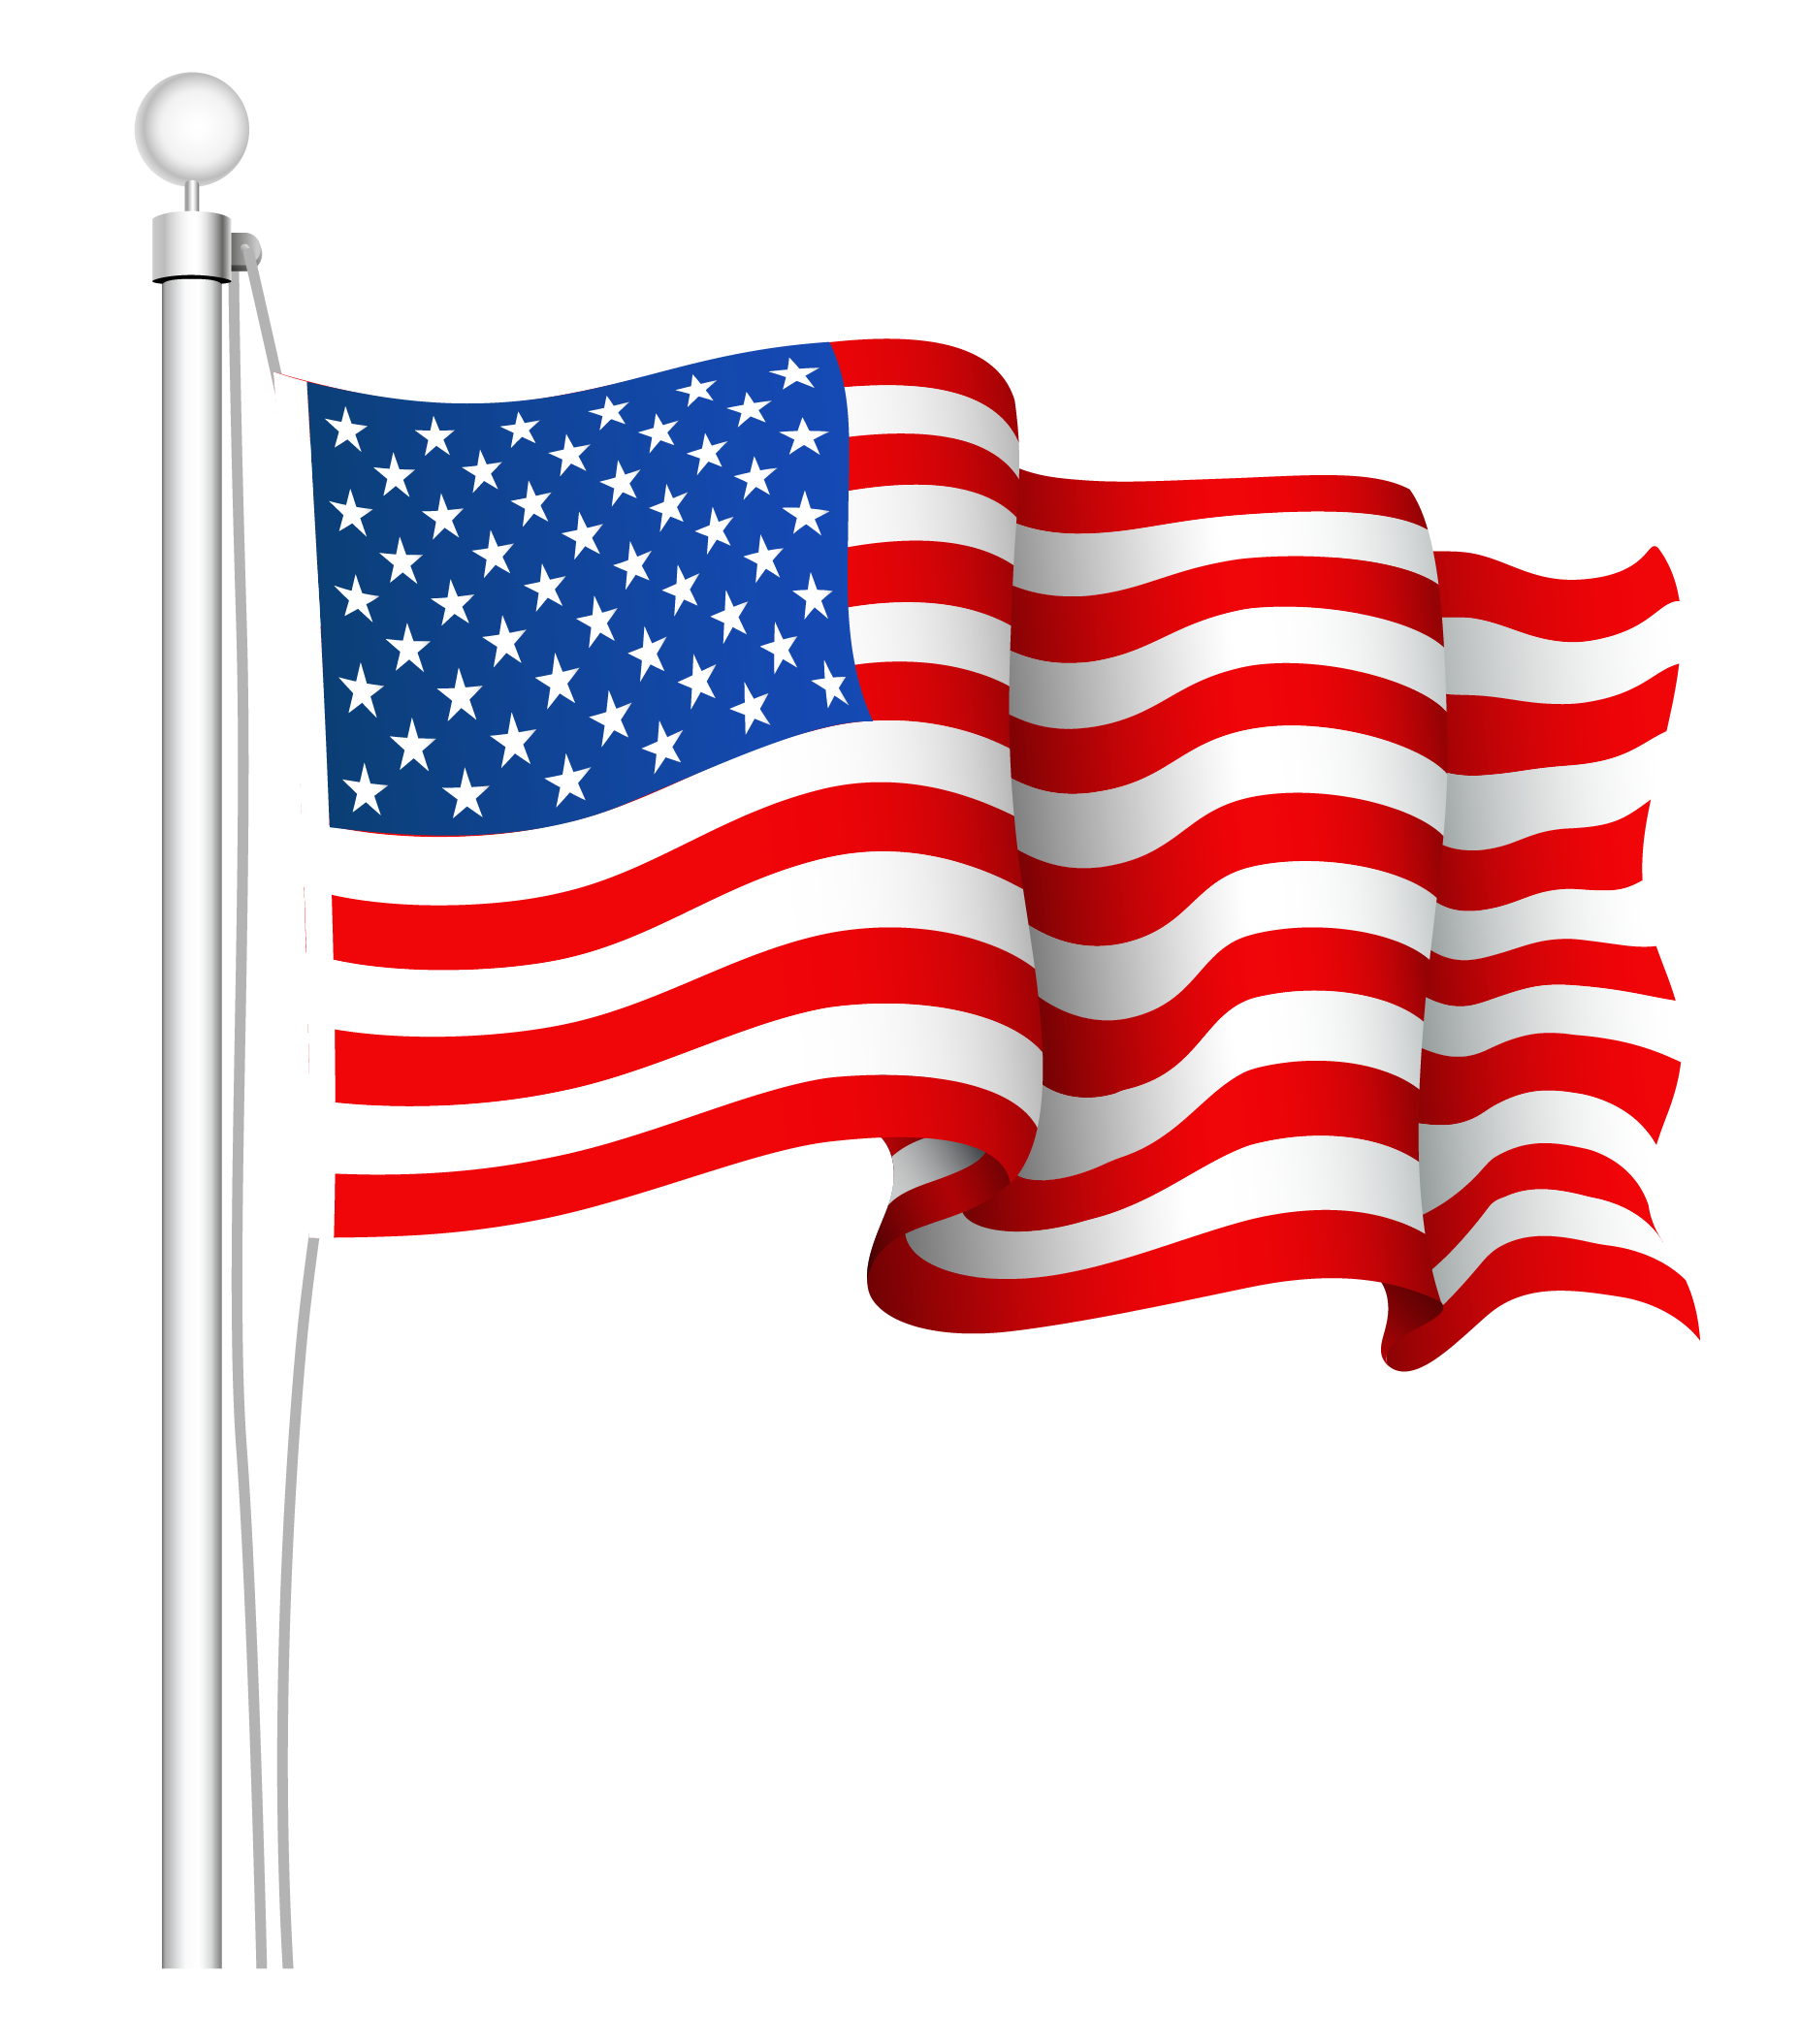 American Flag clipart #16, Download drawings